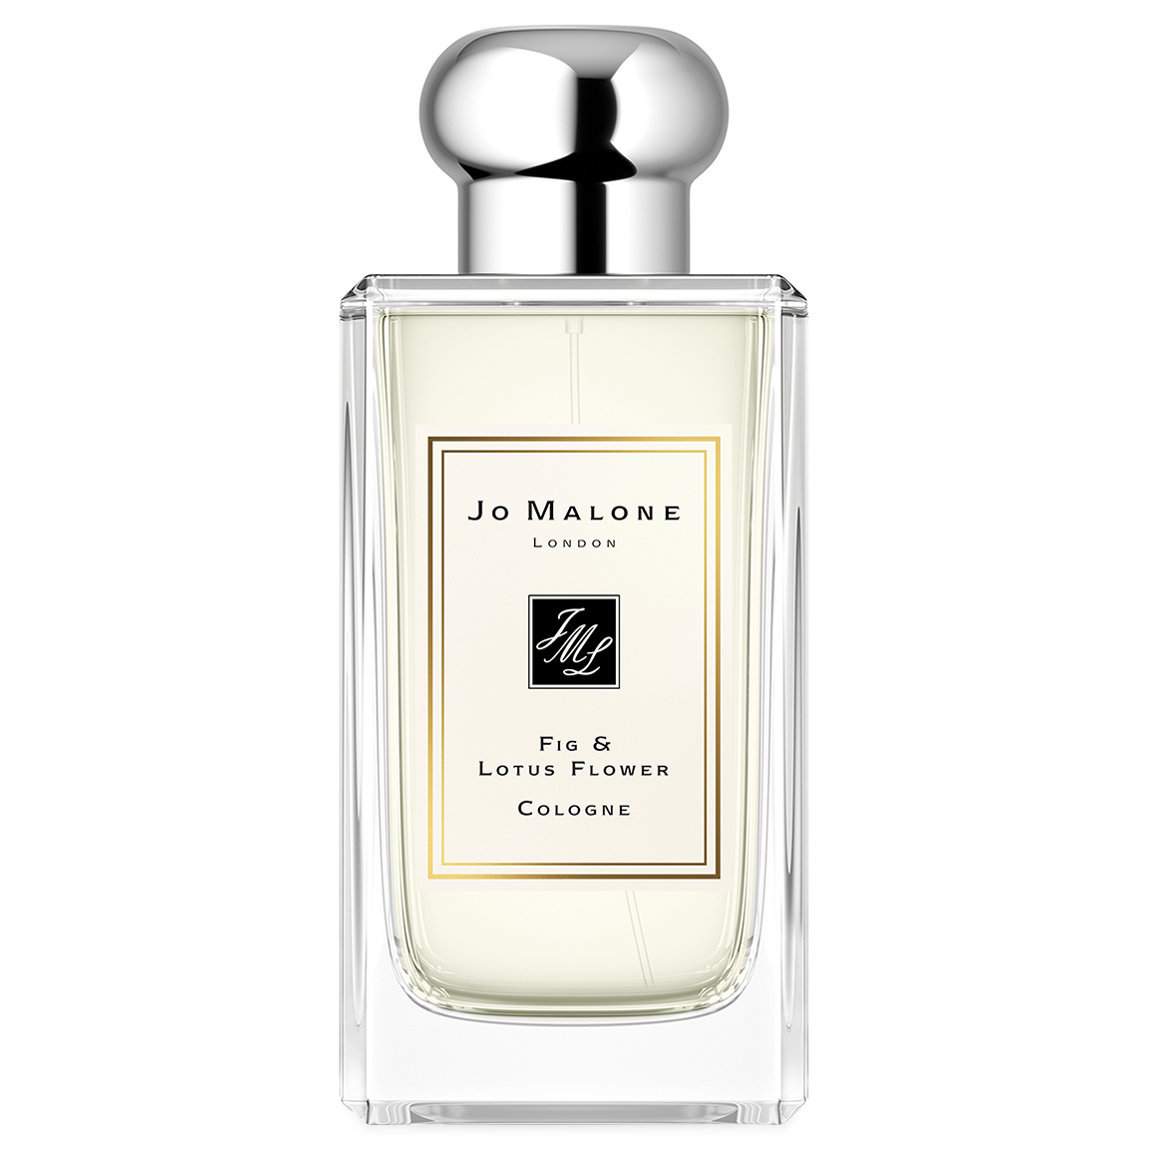 Jo Malone London Fig & Lotus Flower Cologne 100 ml alternative view 1 - product swatch.